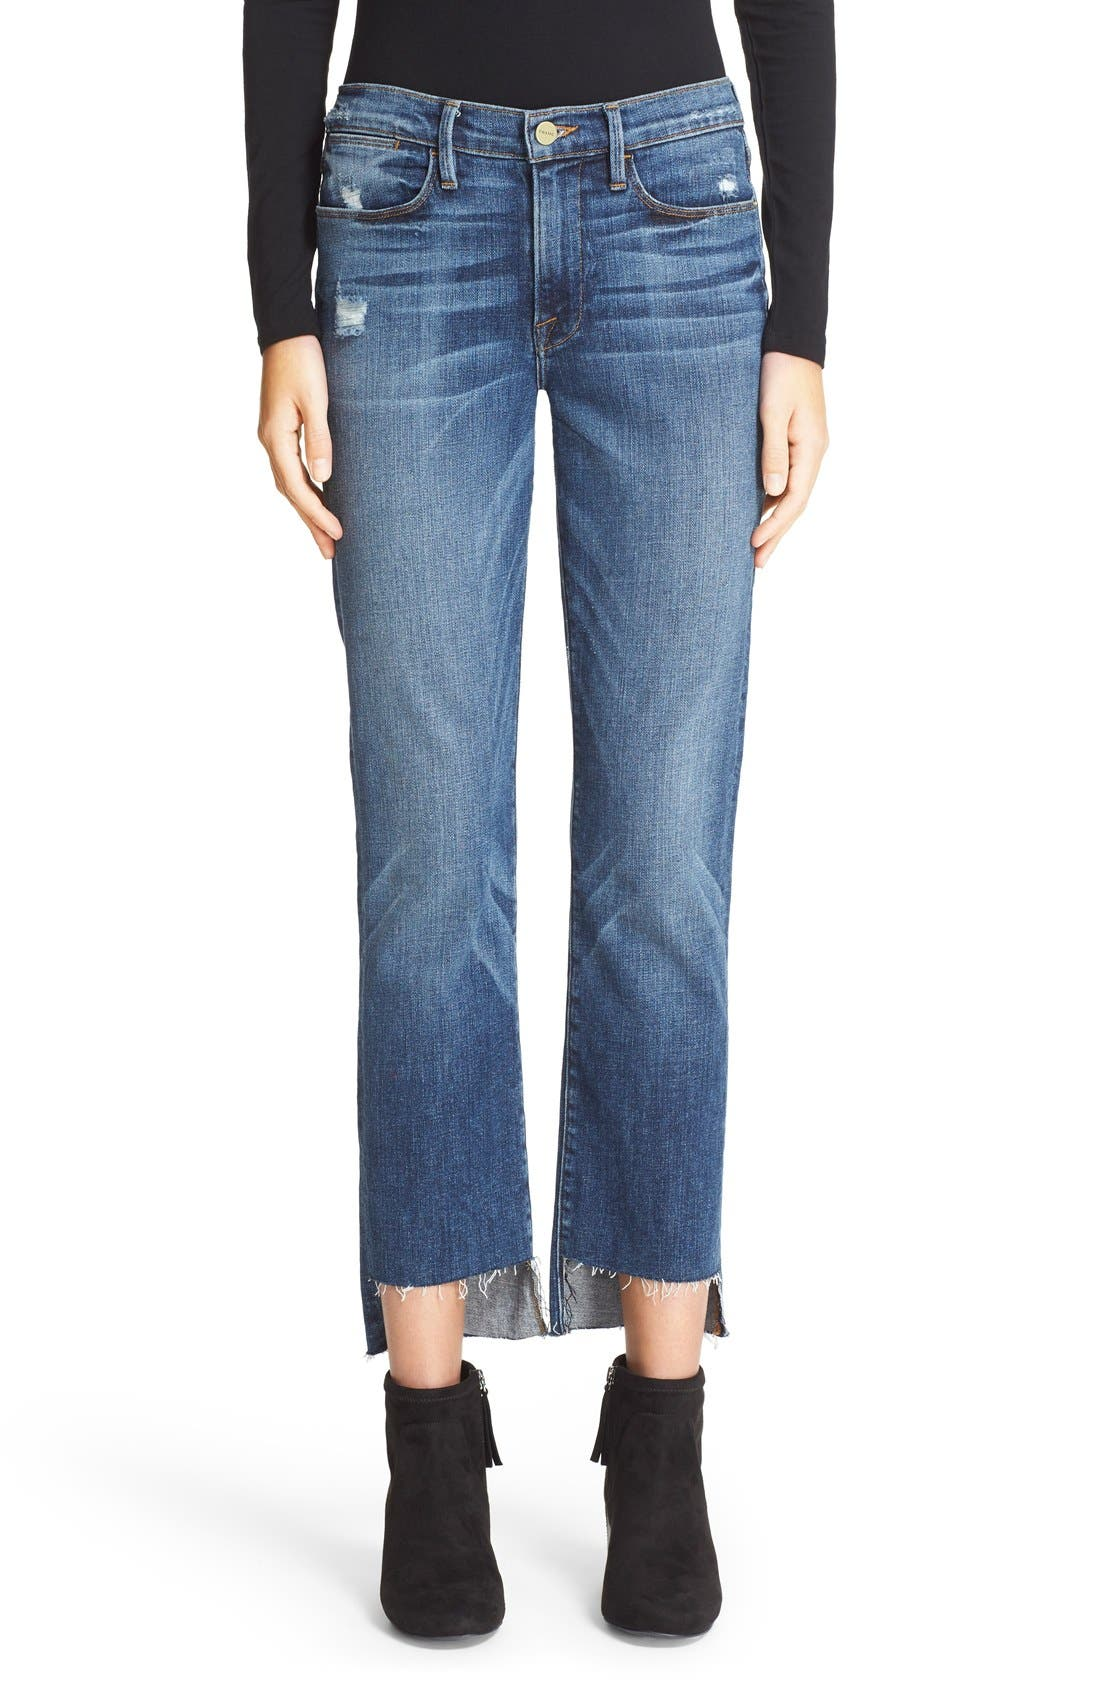 Alternate Image 1 Selected - FRAME 'Le High Straight' High Rise Staggered Hem Jeans (Carroll) (Nordstrom Exclusive)